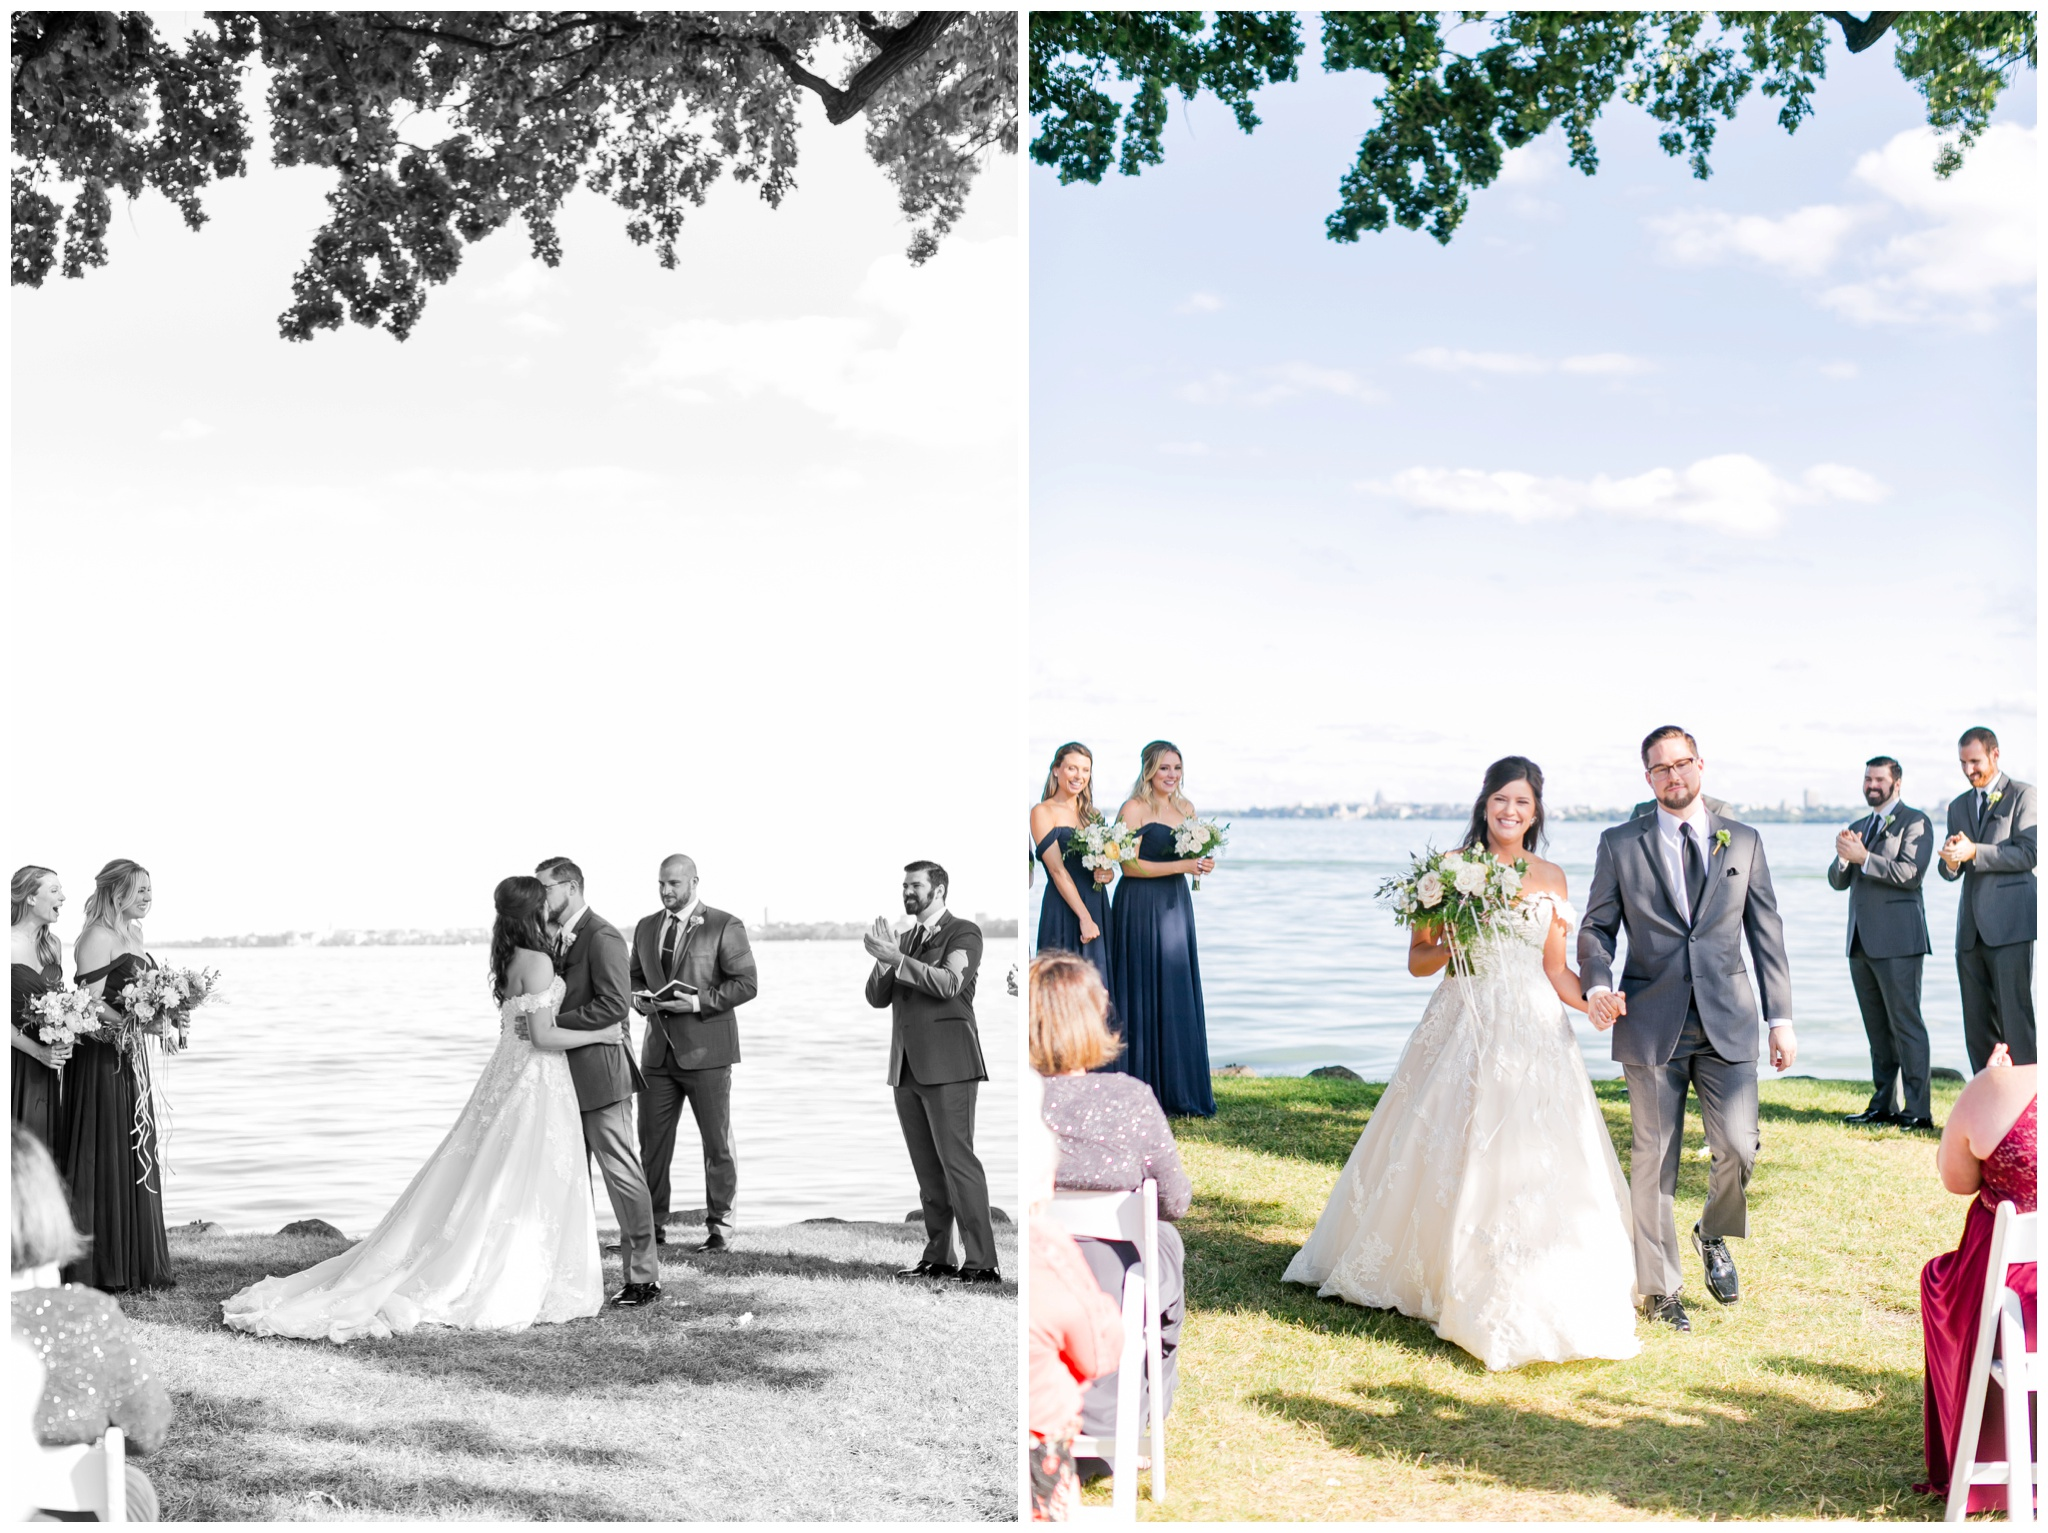 bishops_bay_country_club_wedding_middleton_wisconsin_caynay_photo_4715.jpg